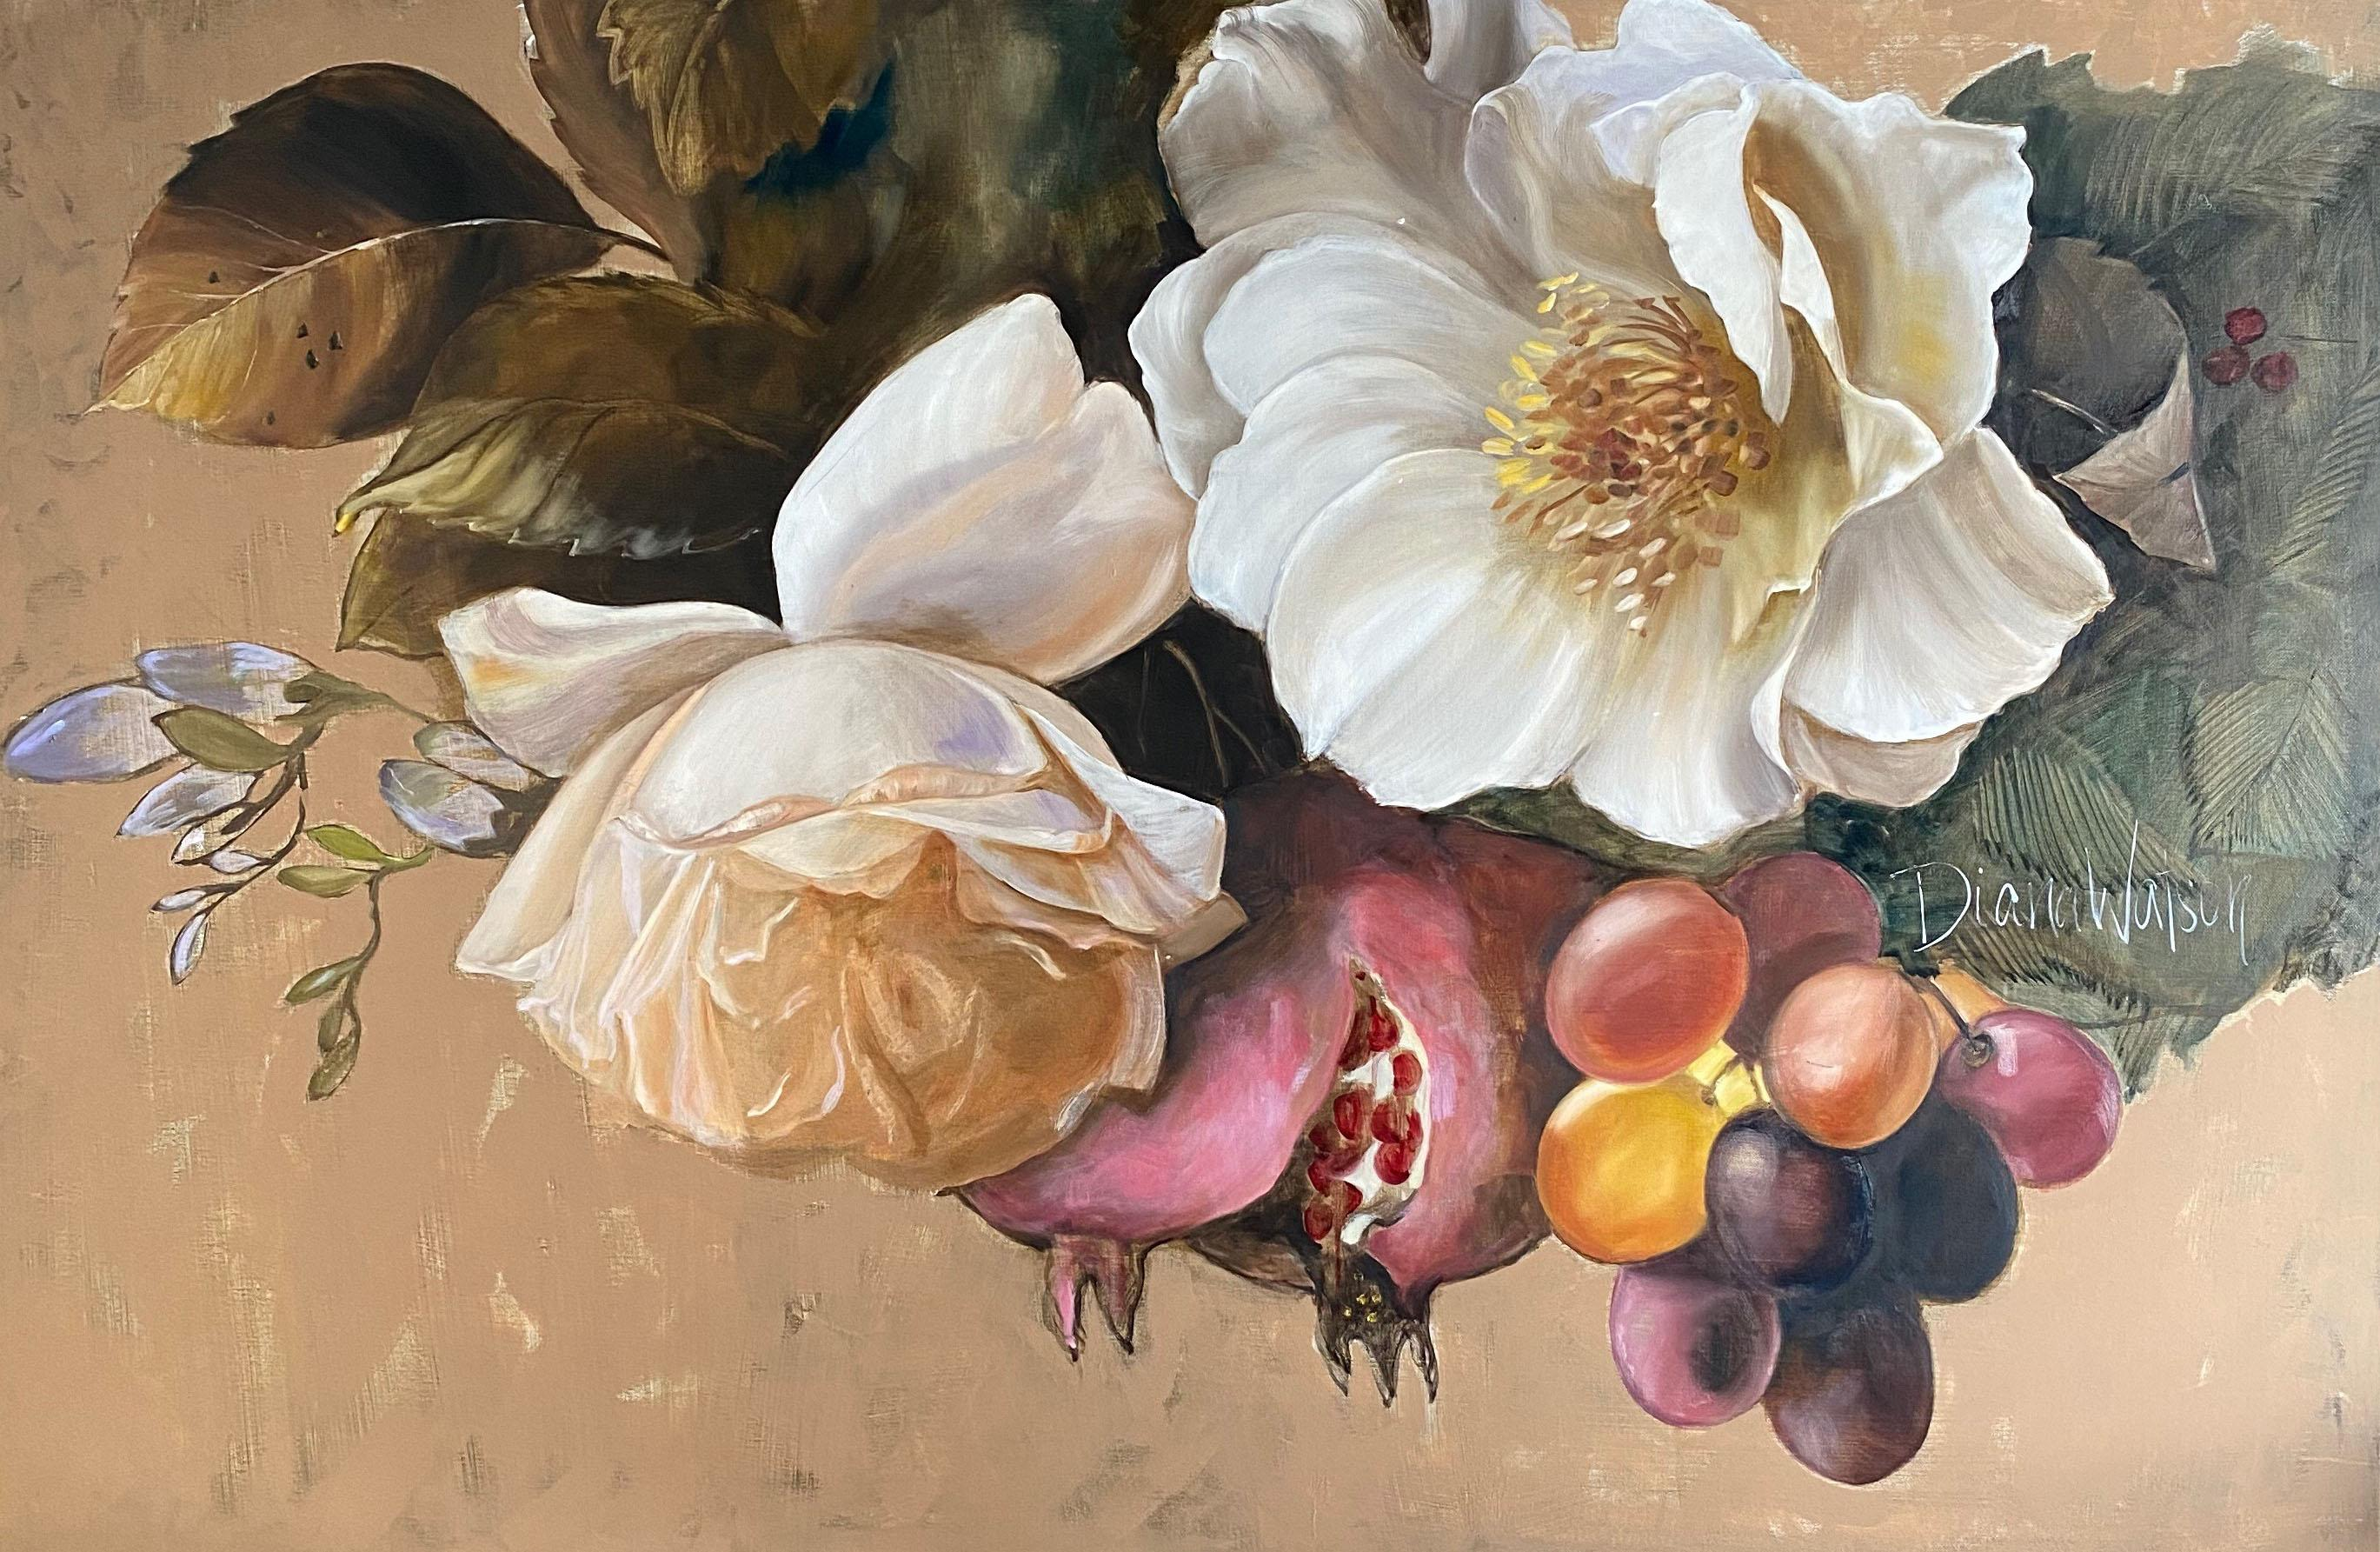 'Angelica', 2020, Contemporary still life on oil on linen